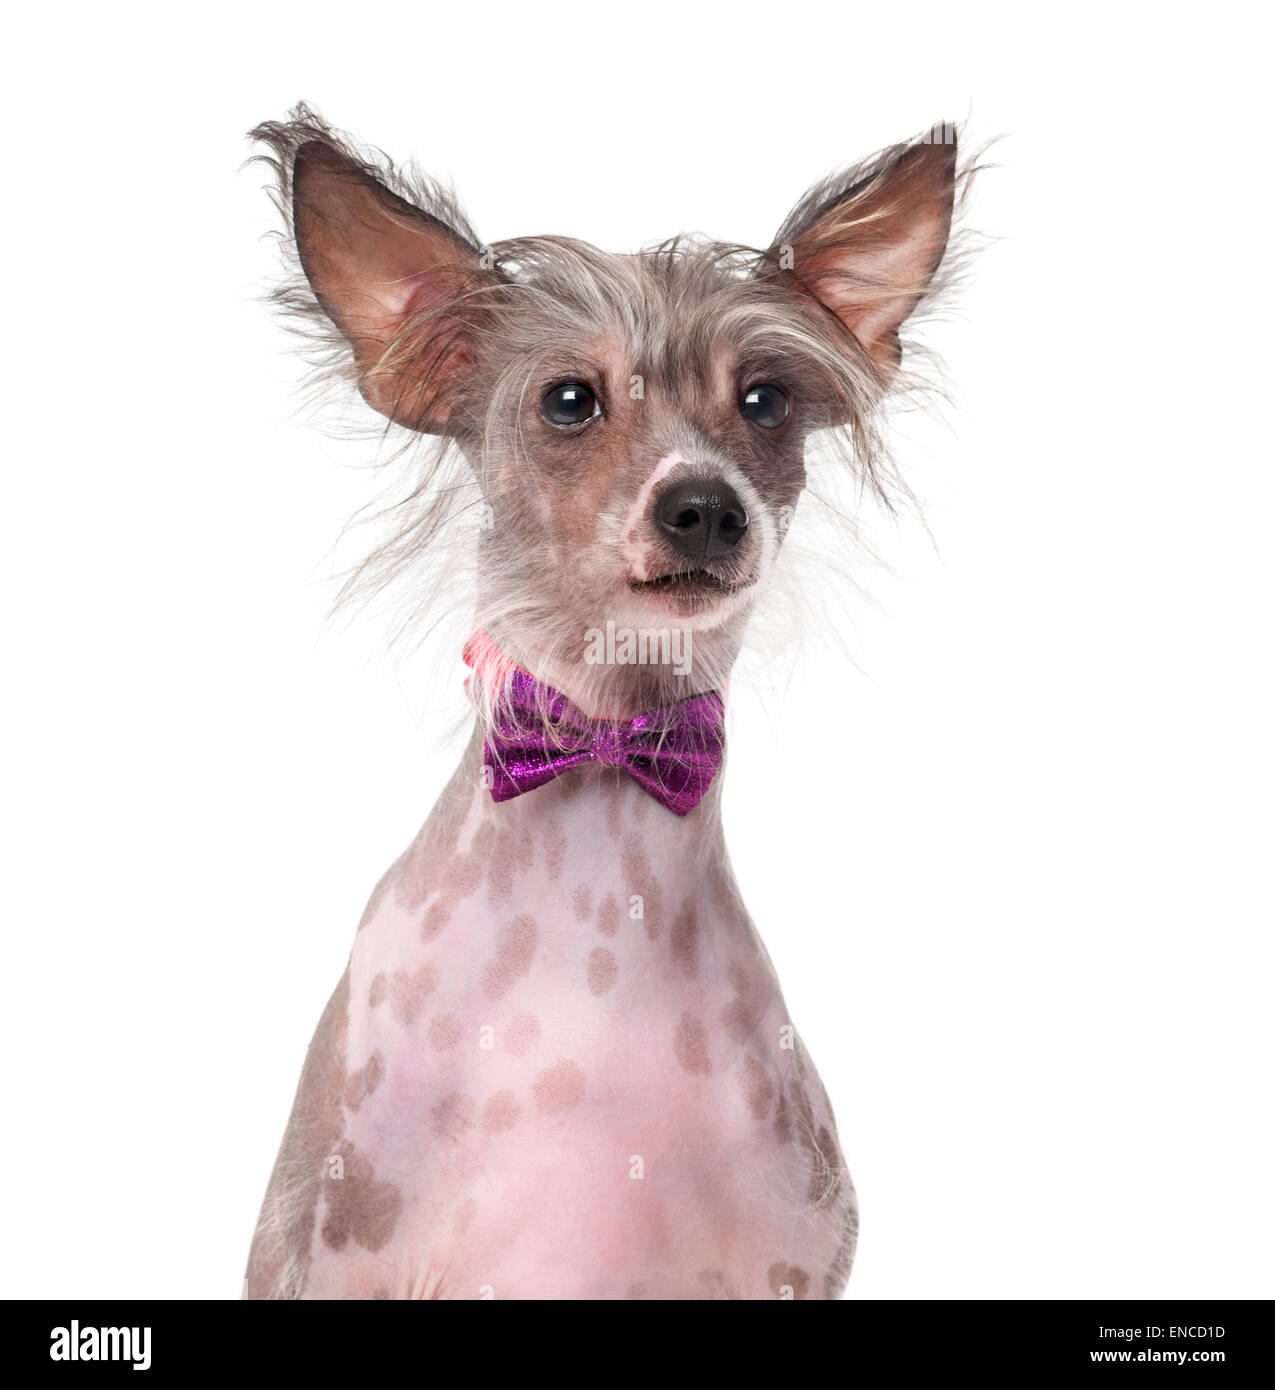 Chinese Crested Dog wearing a bow tie (8 months old) in front of a white background - Stock Image